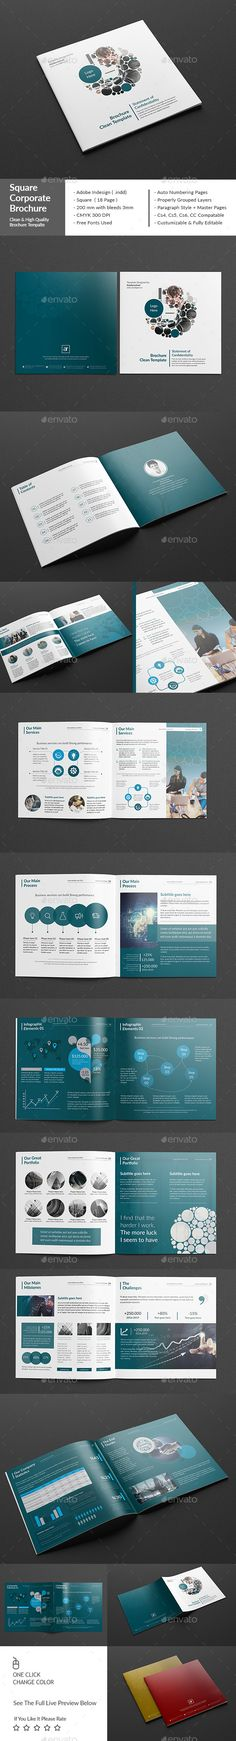 Square Corporate Brochure 18 Page Template PSD #design Download: http://graphicriver.net/item/square-corporate-brochure-18-page/14145298?ref=ksioks